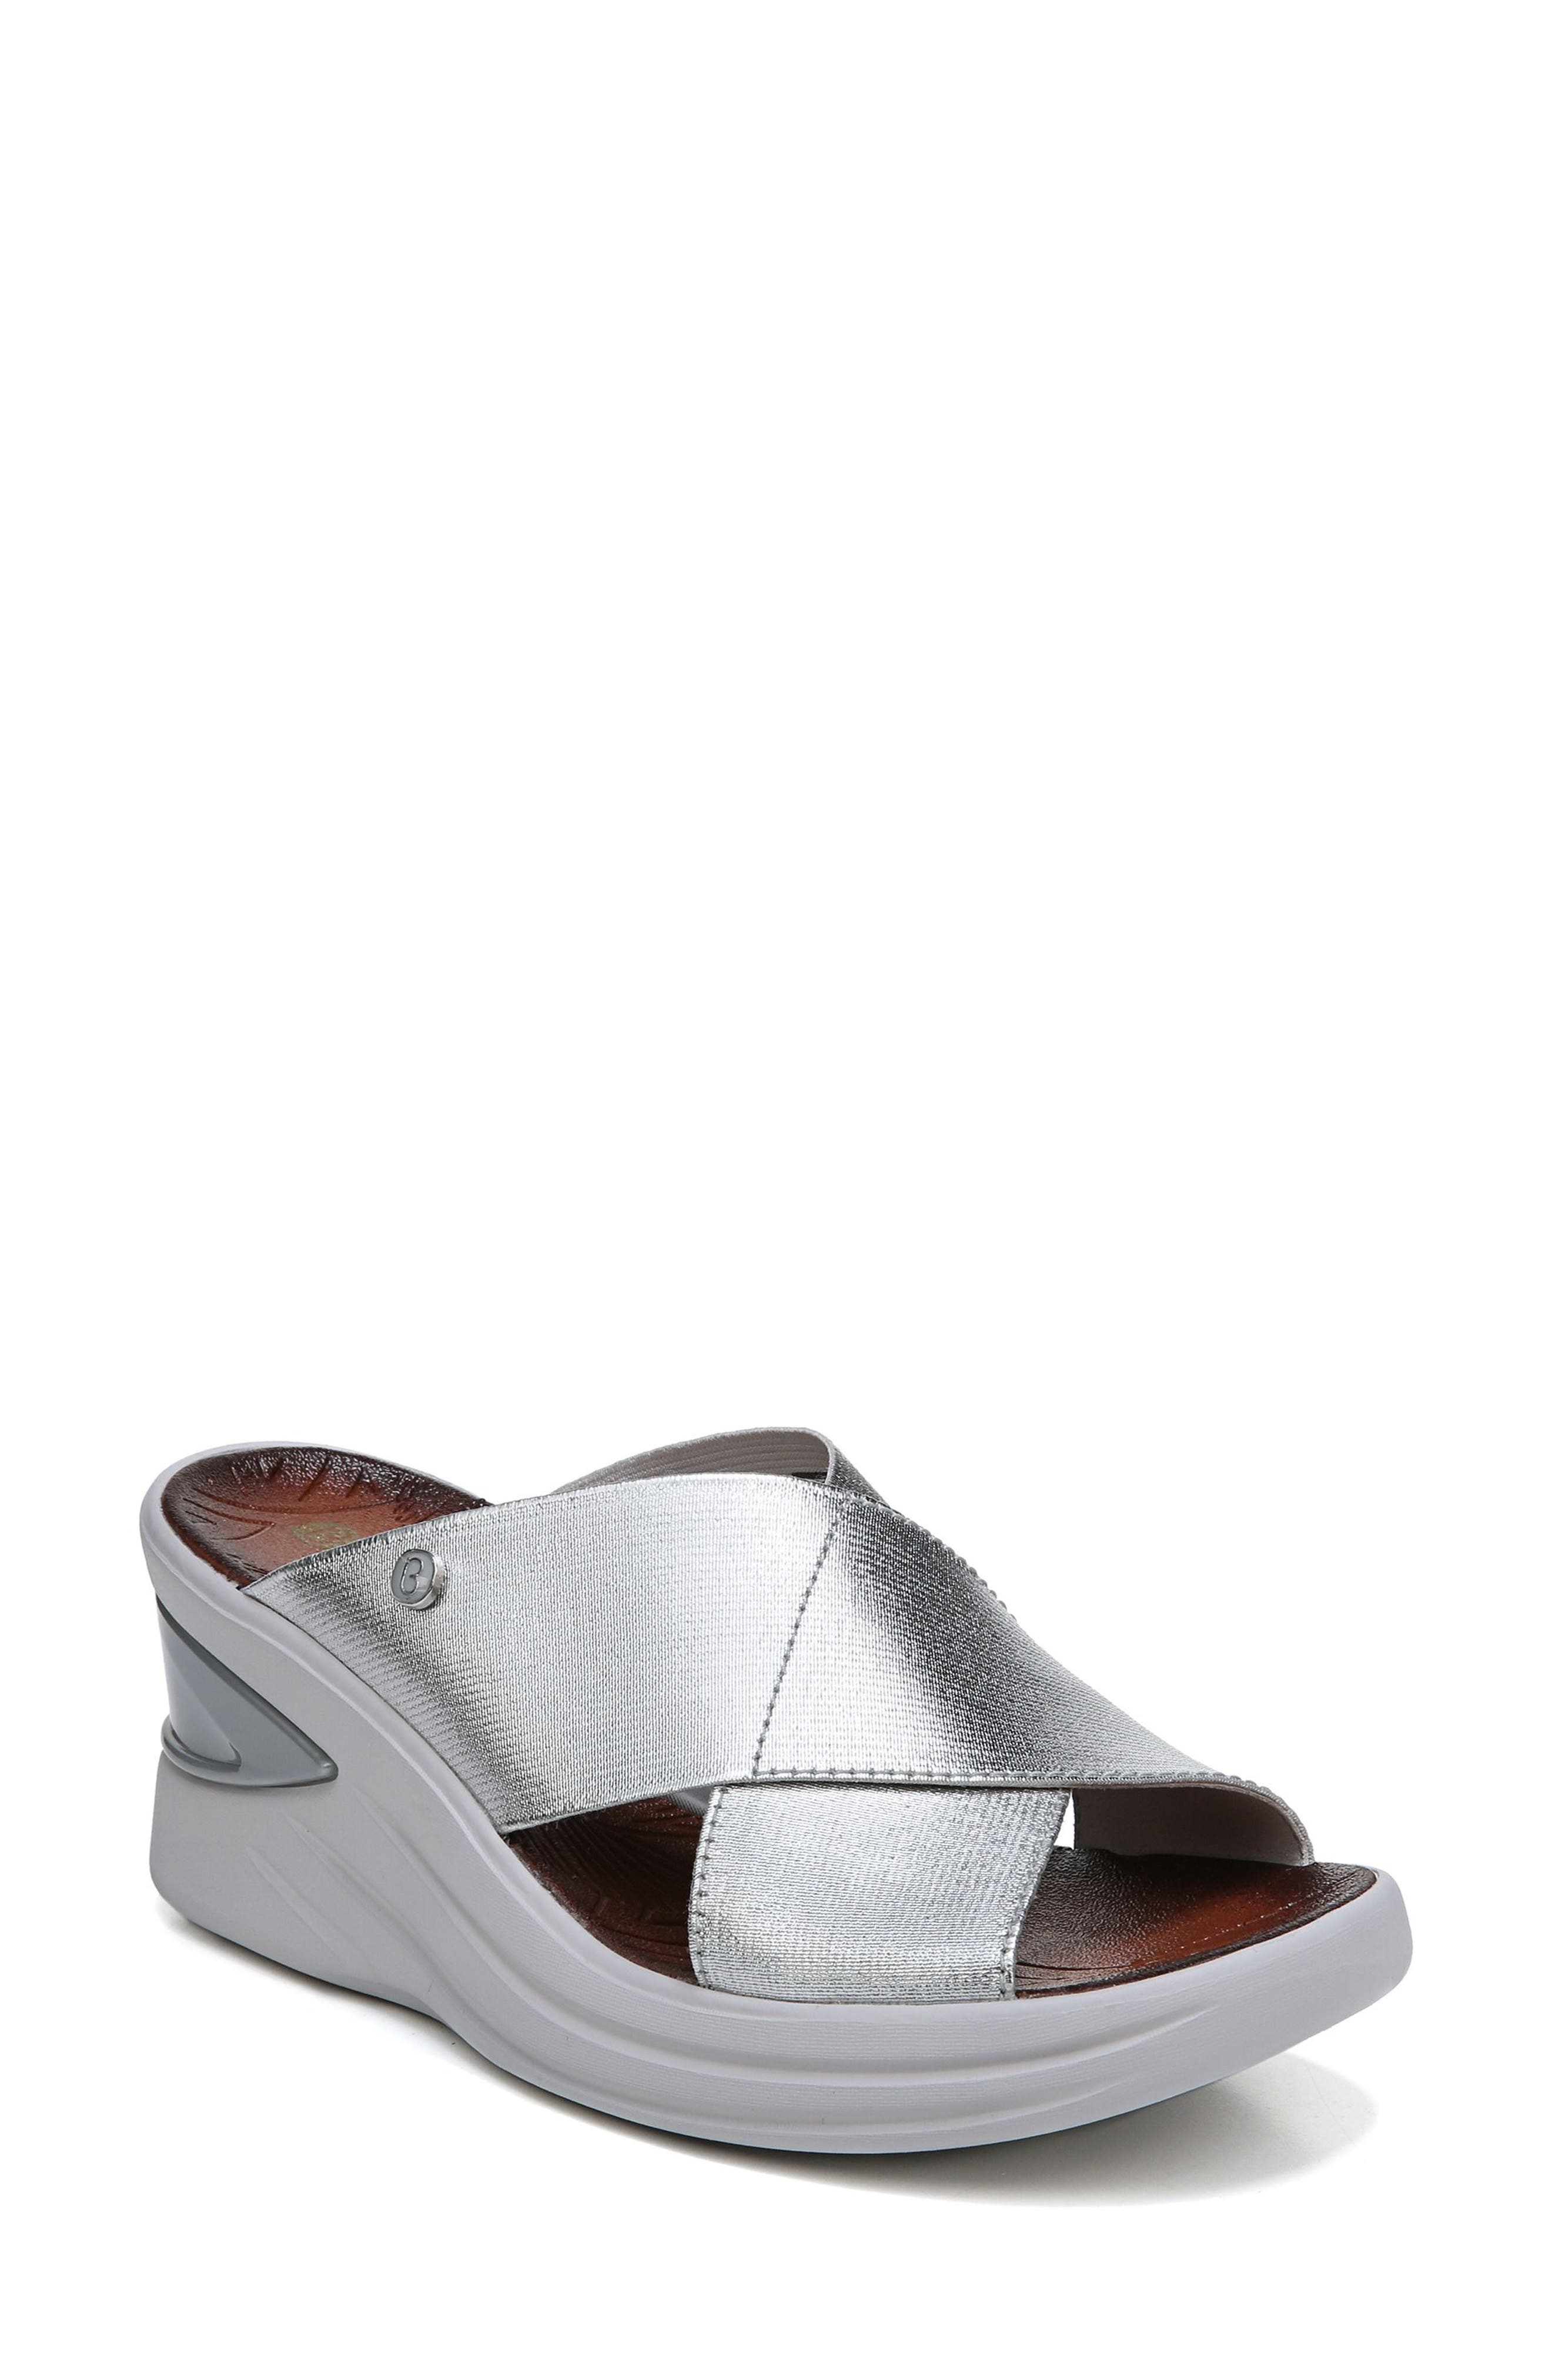 BZees Vista Slide Sandal (Women)